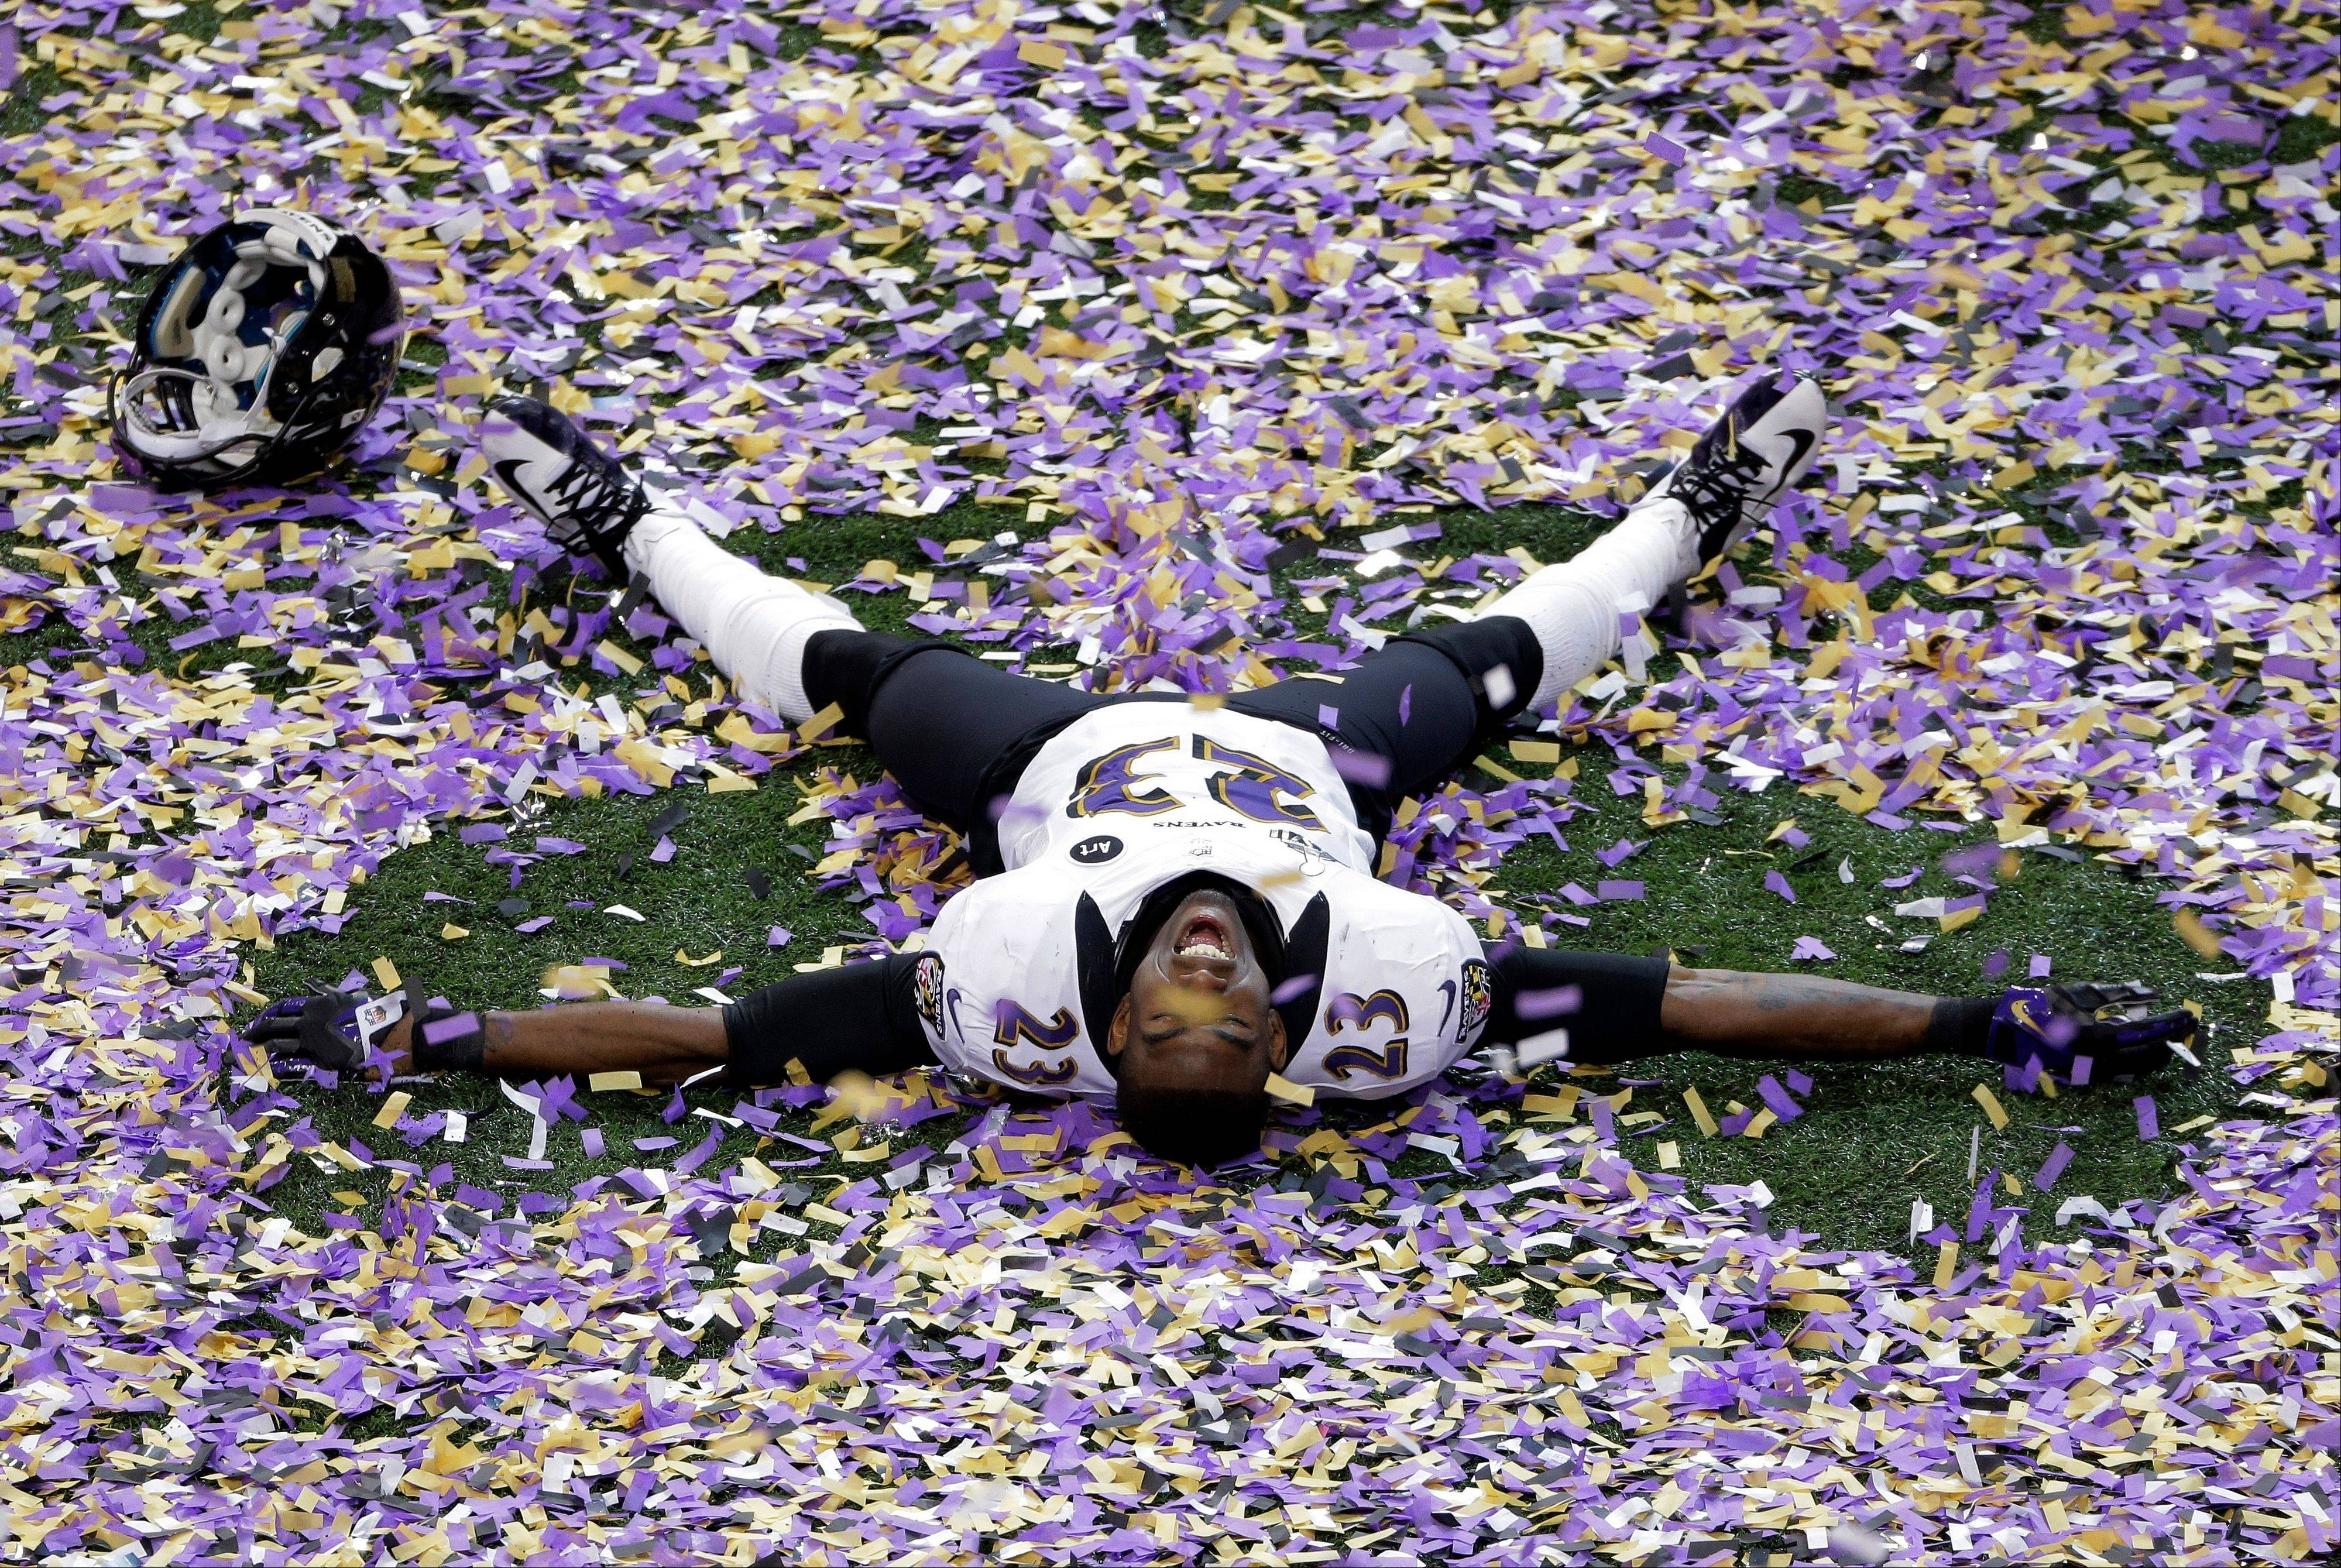 Ravens defensive back Chykie Brown celebrates after Super Bowl XLVII on Sunday in New Orleans. The Ravens won 34-31.